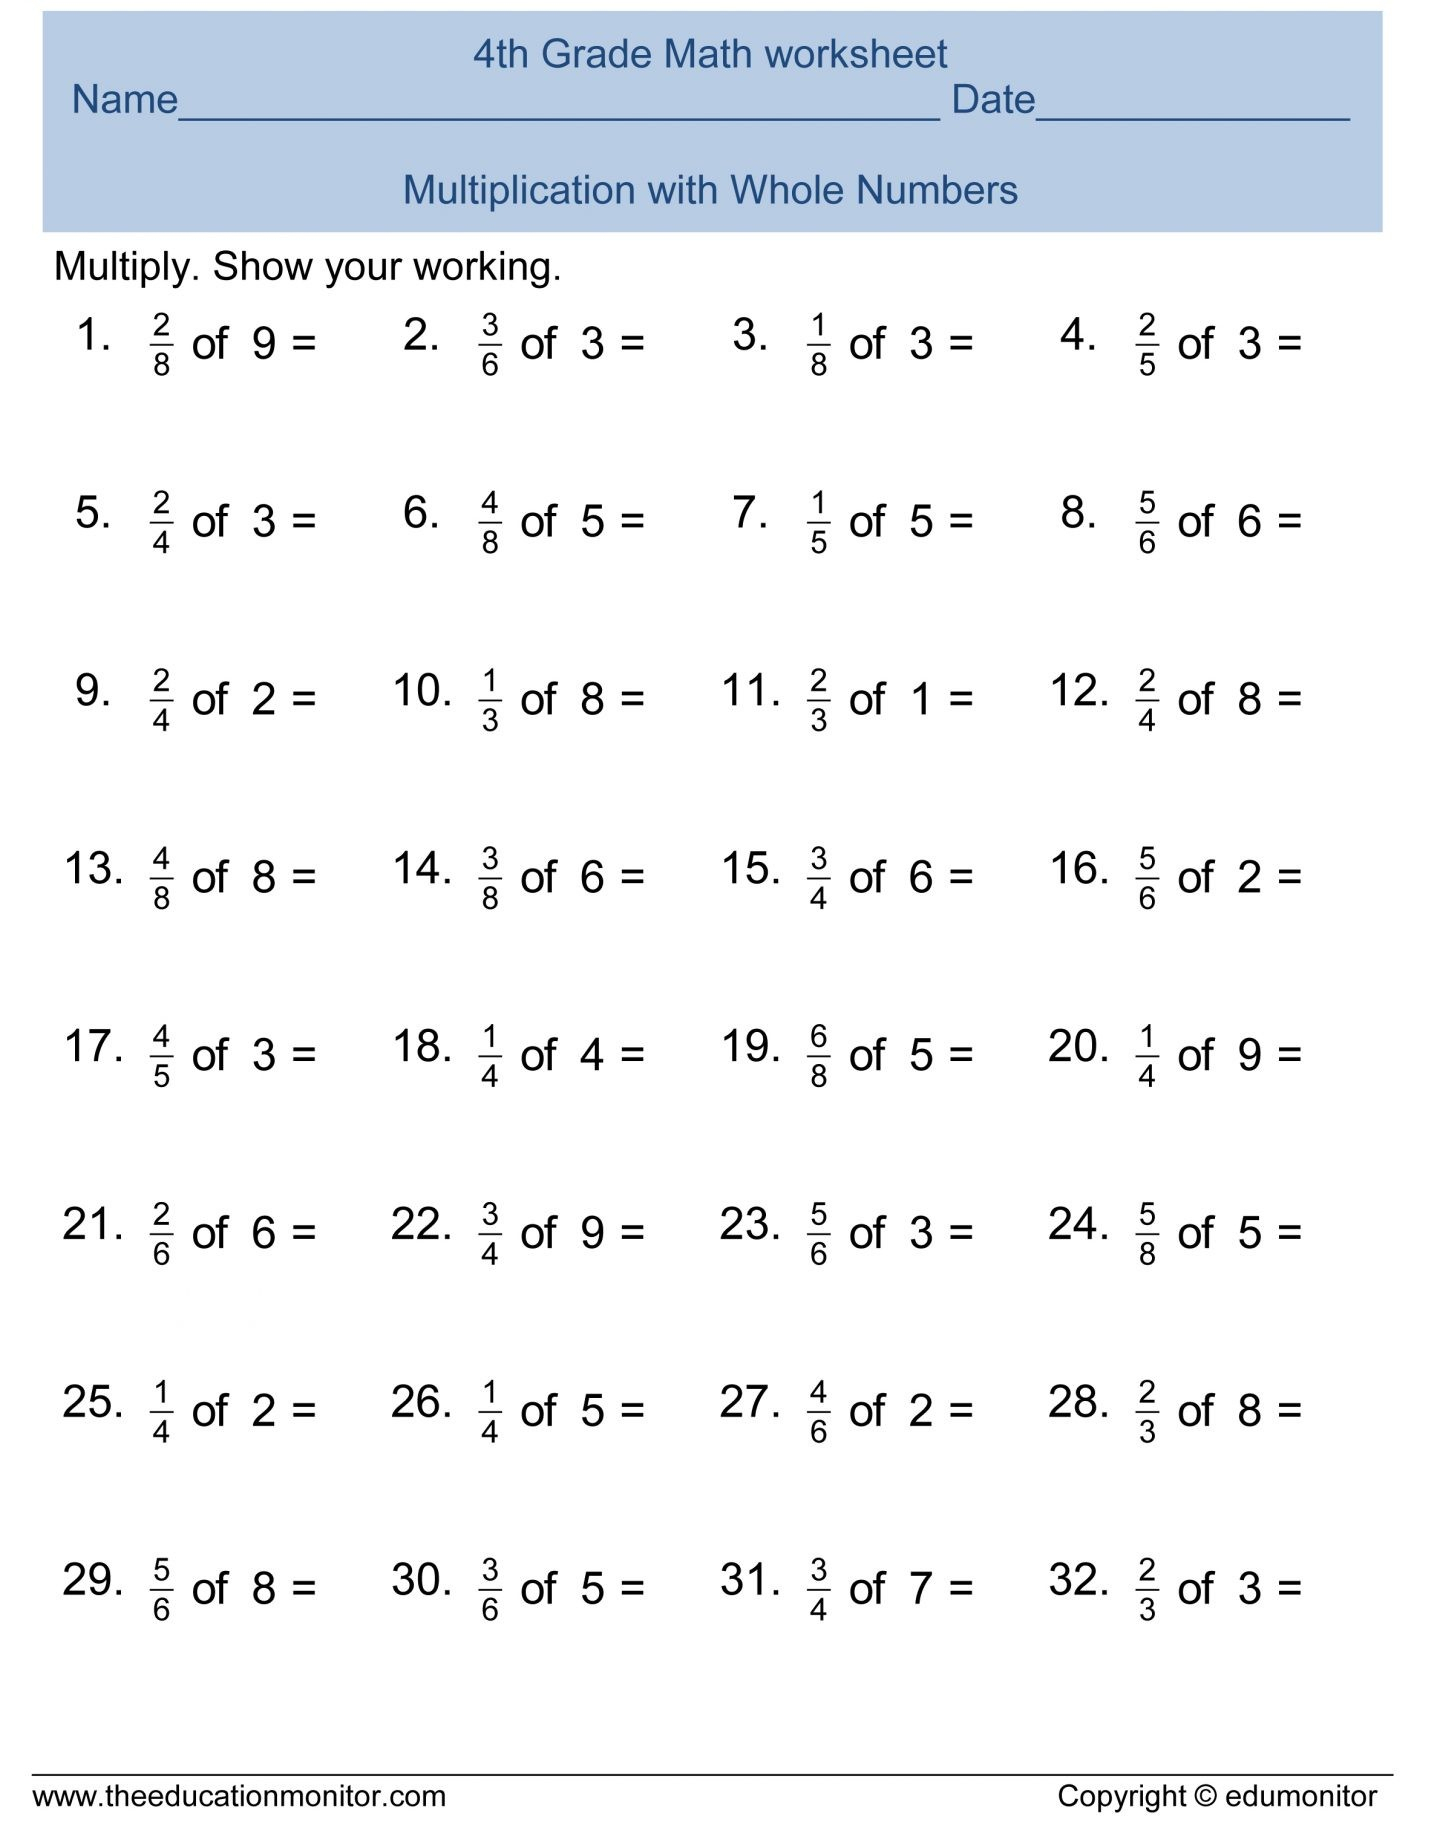 7th Grade Math Worksheets Printable With Answers